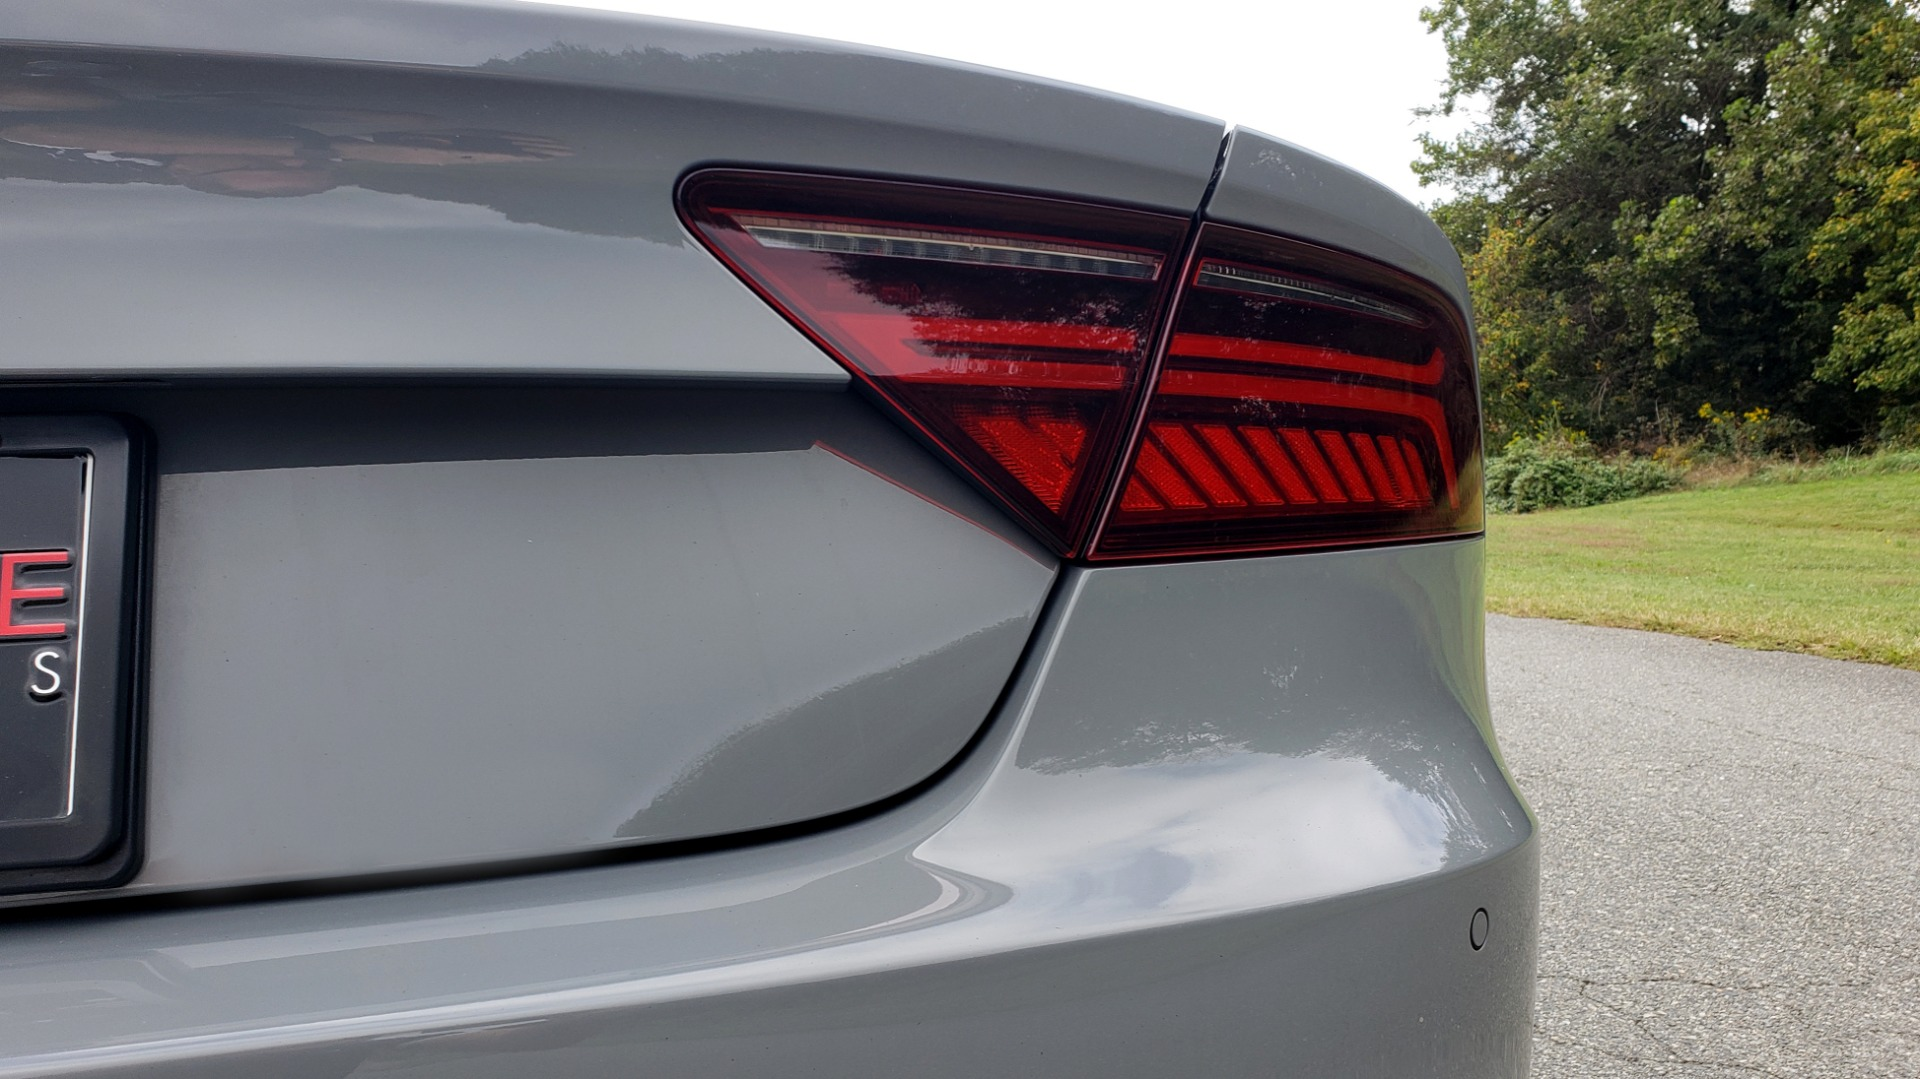 Used 2018 Audi RS 7 for sale Sold at Formula One Imports in Charlotte NC 28227 18